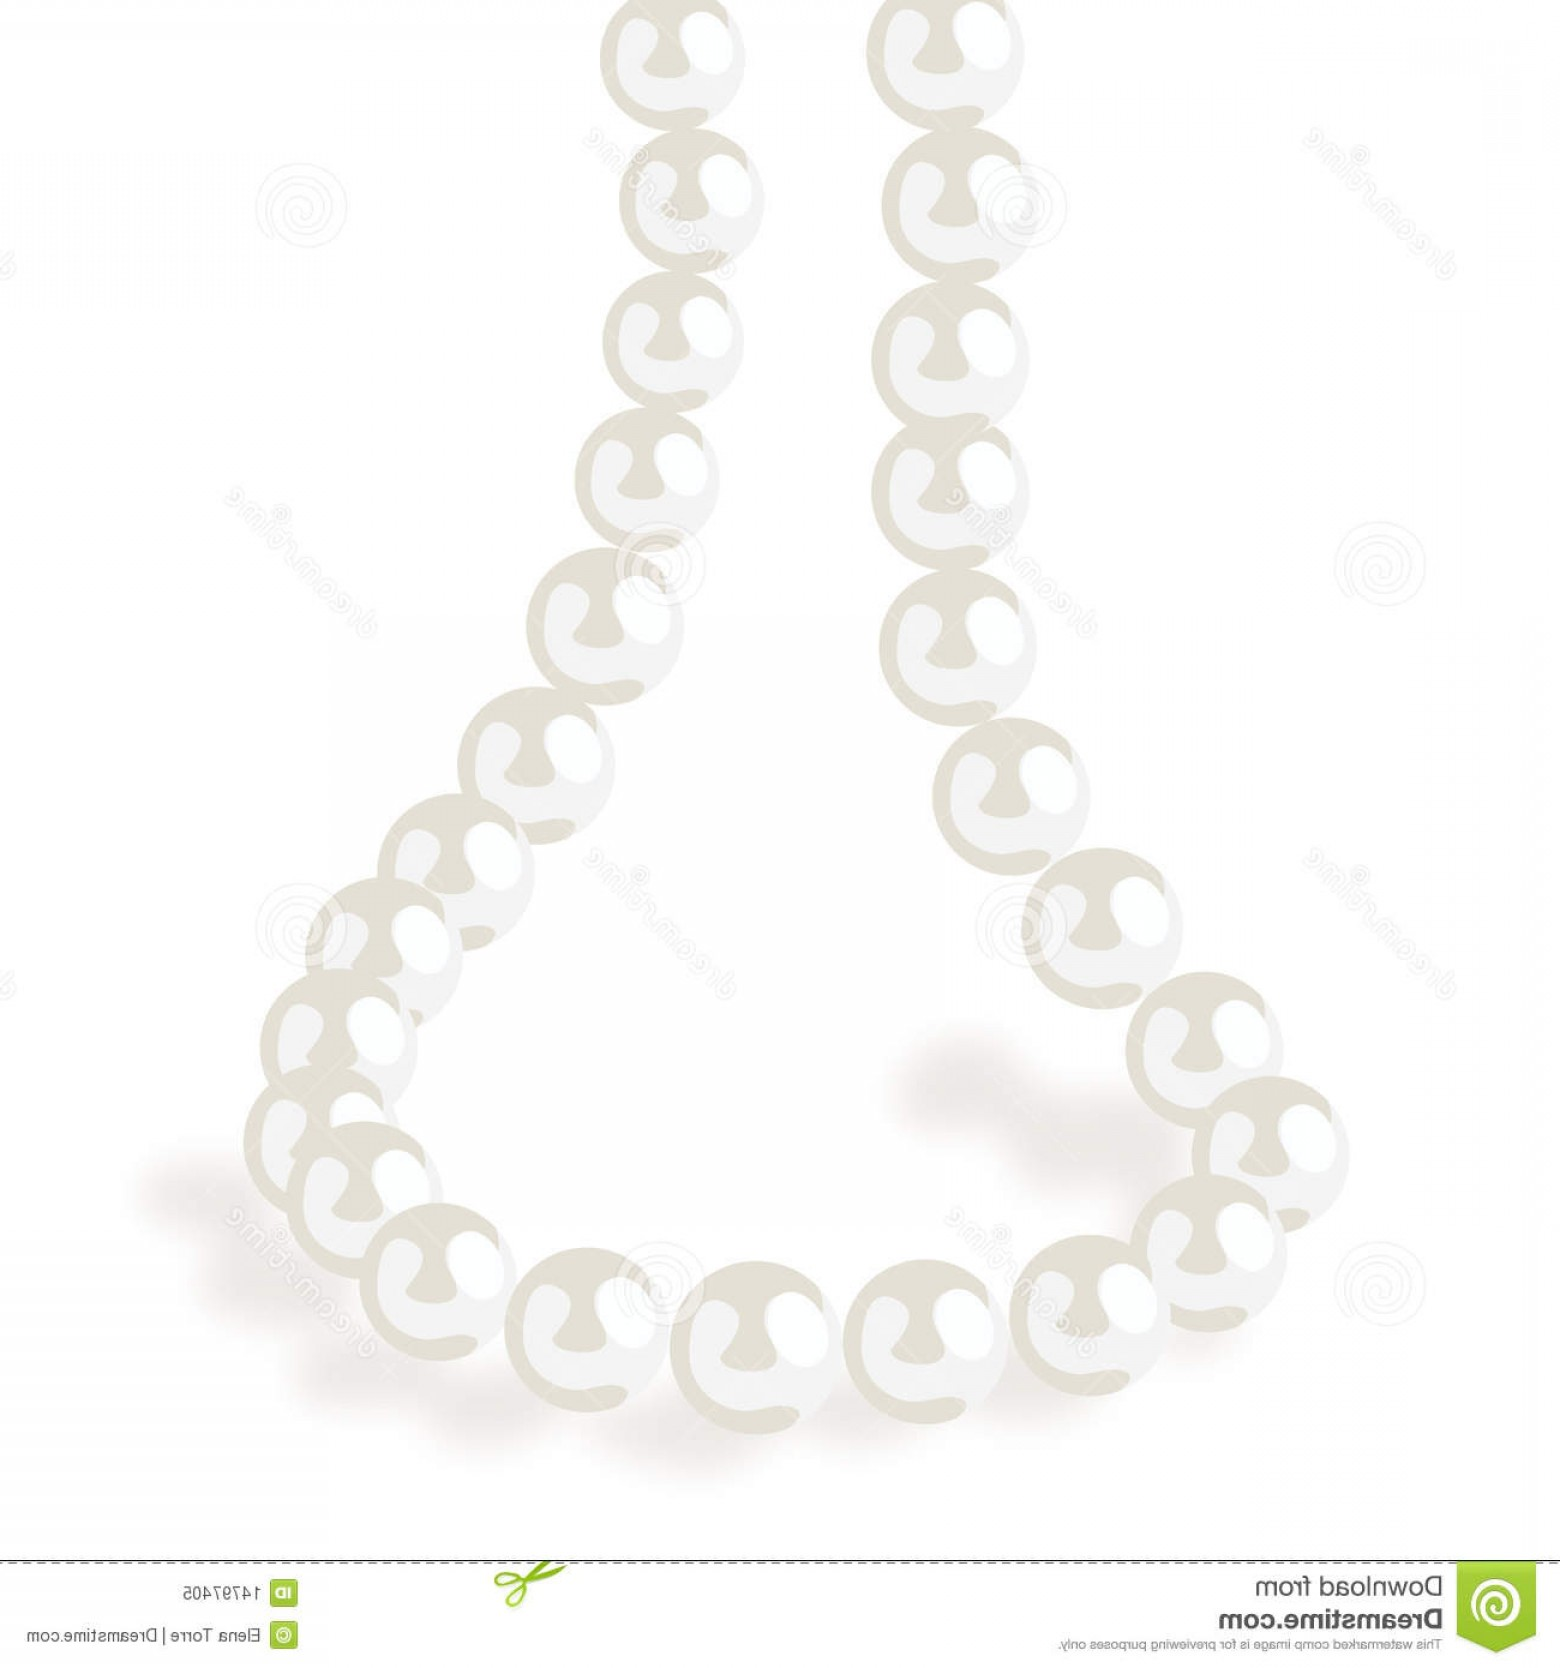 Pearl Necklace Vector Clip Art: Royalty Free Stock Photo Pearl Necklace Vector Eps File Image